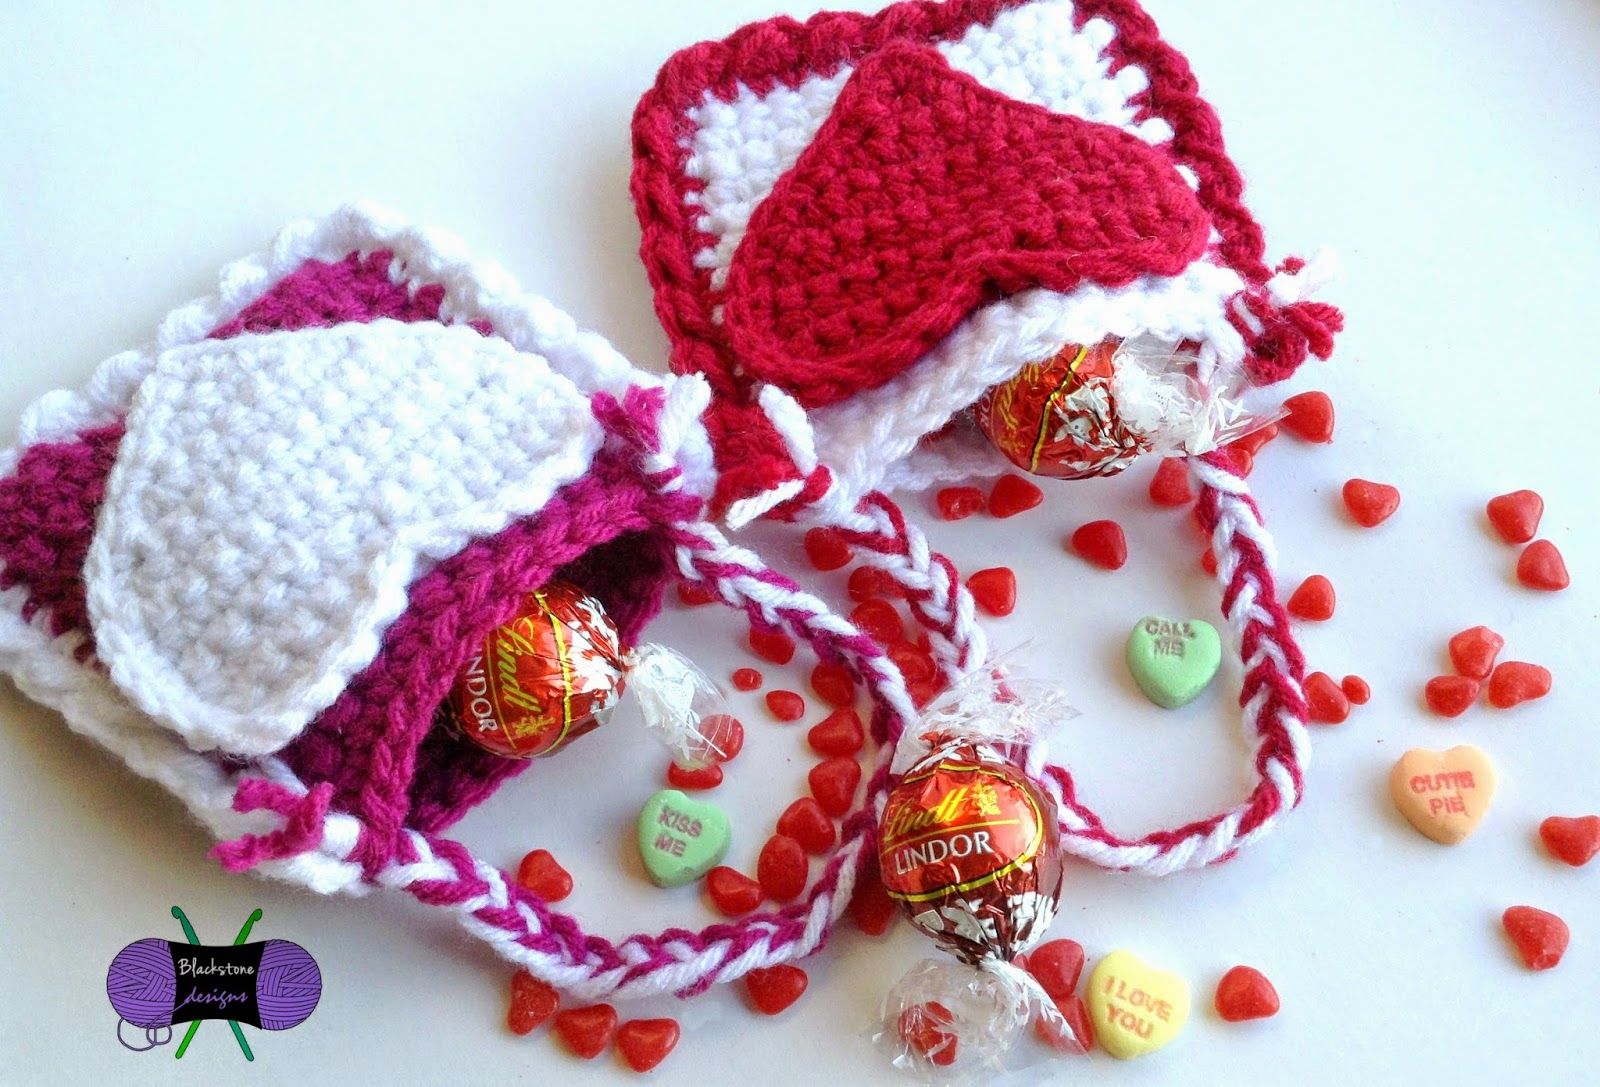 http://www.ravelry.com/patterns/library/valentines-day-treat-bags